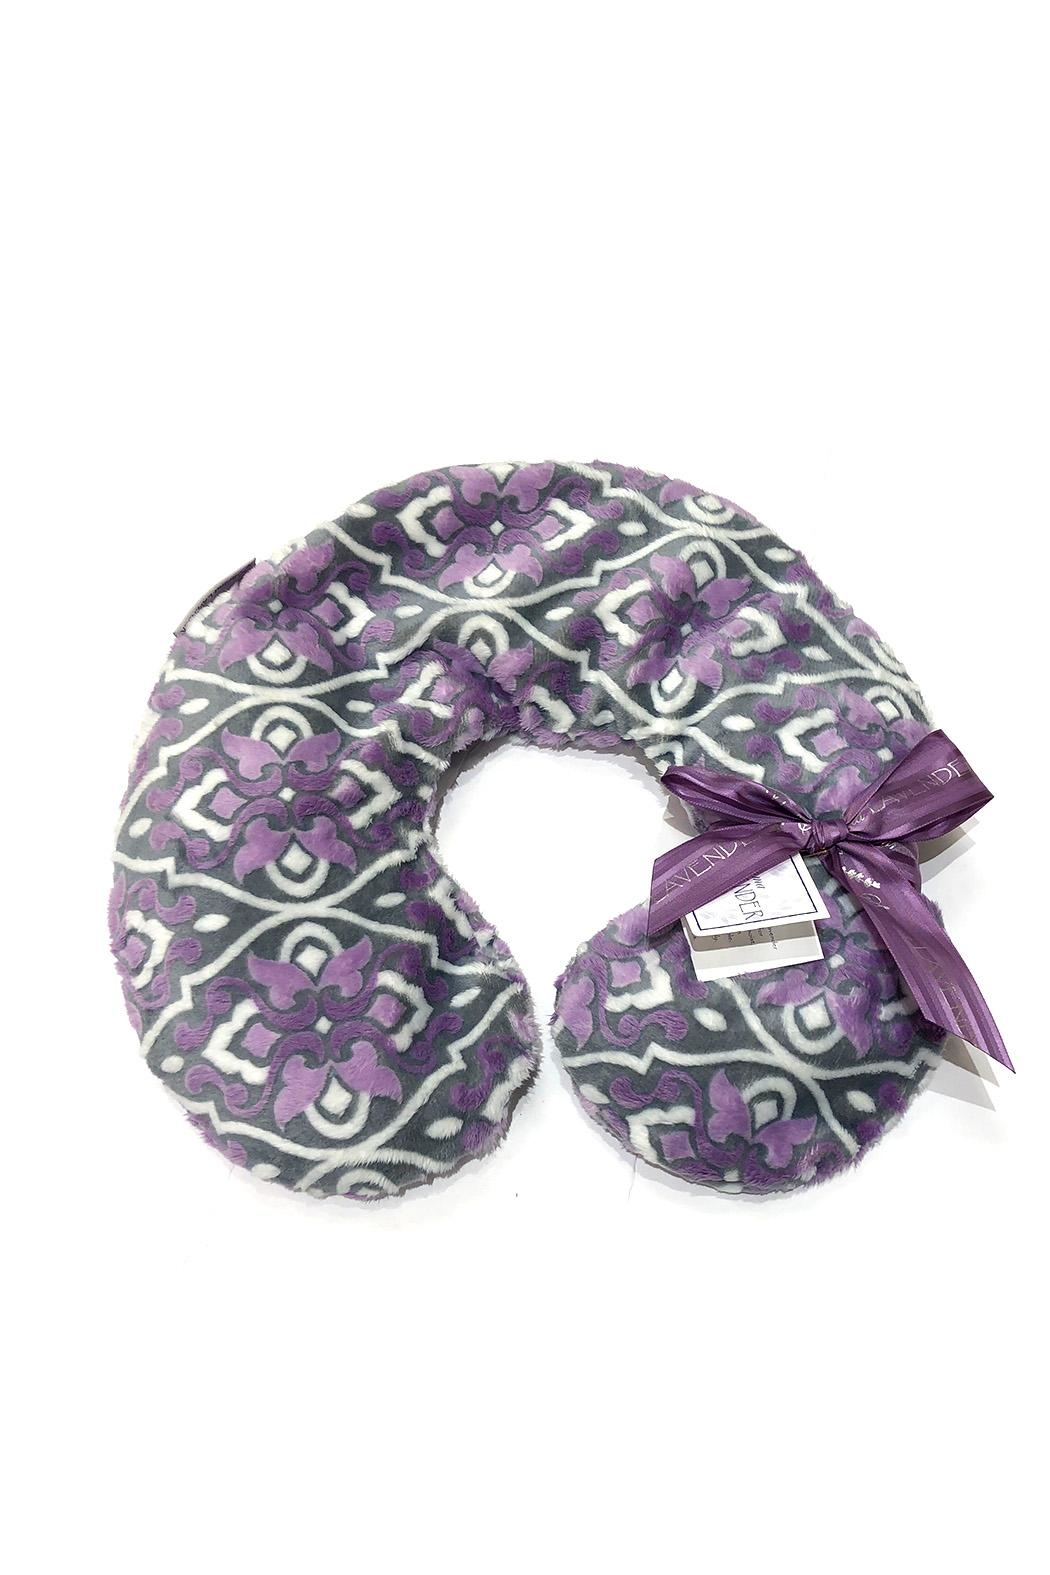 Sonoma Lavender Lavender Neck Pillow From New York By Let S